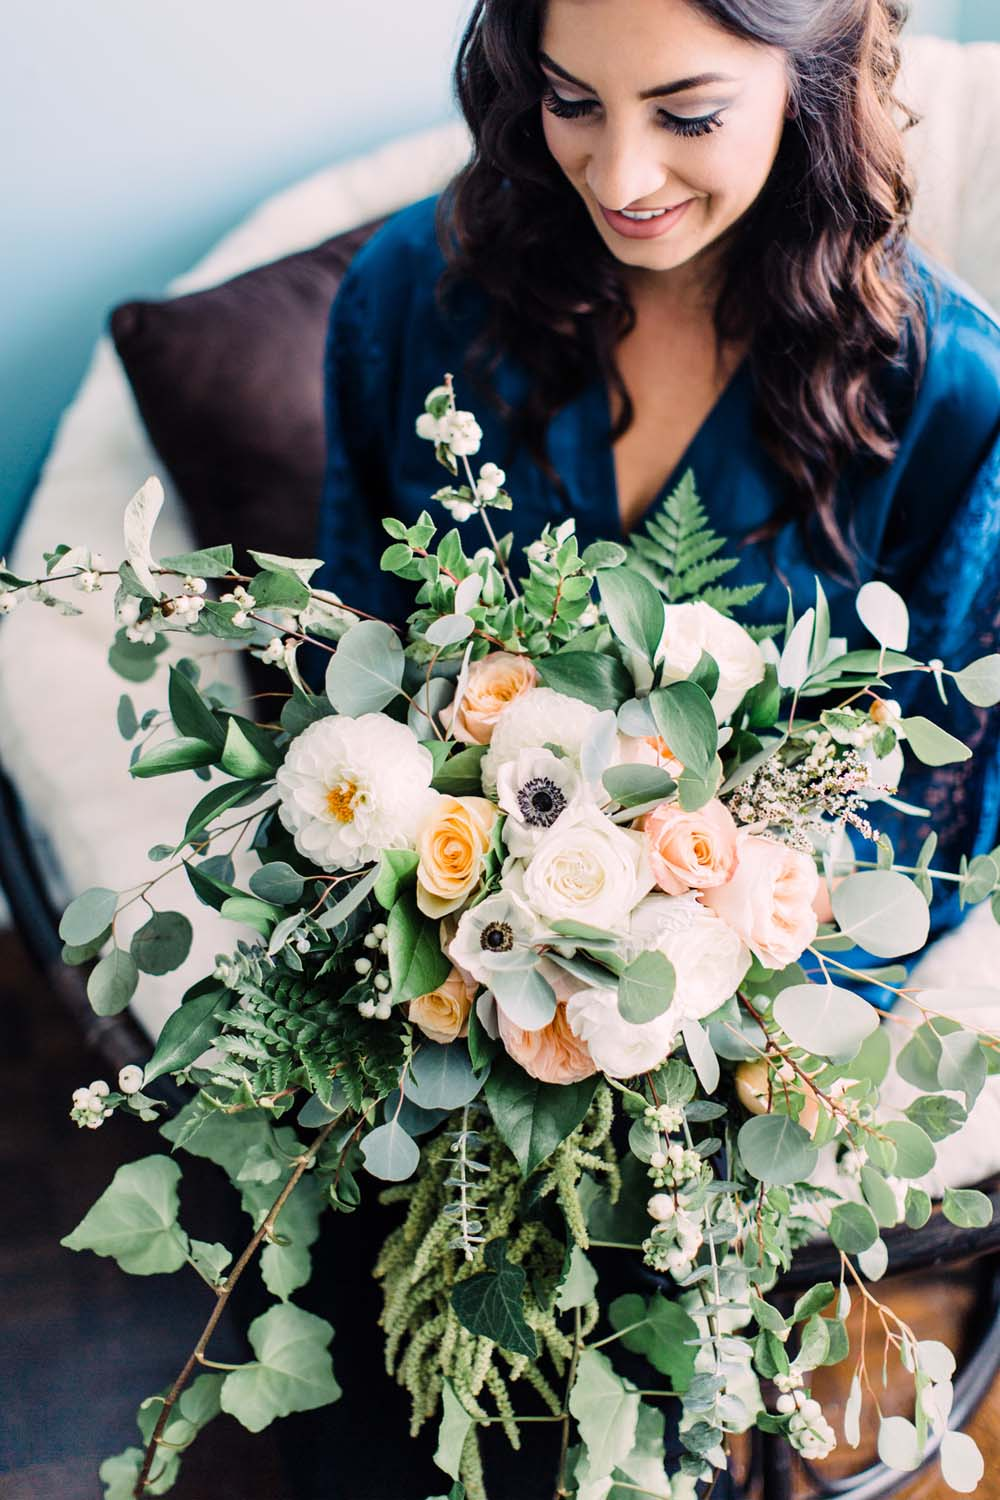 A Rustic, Whimsical Wedding in Tottenham - Bride and bouquet